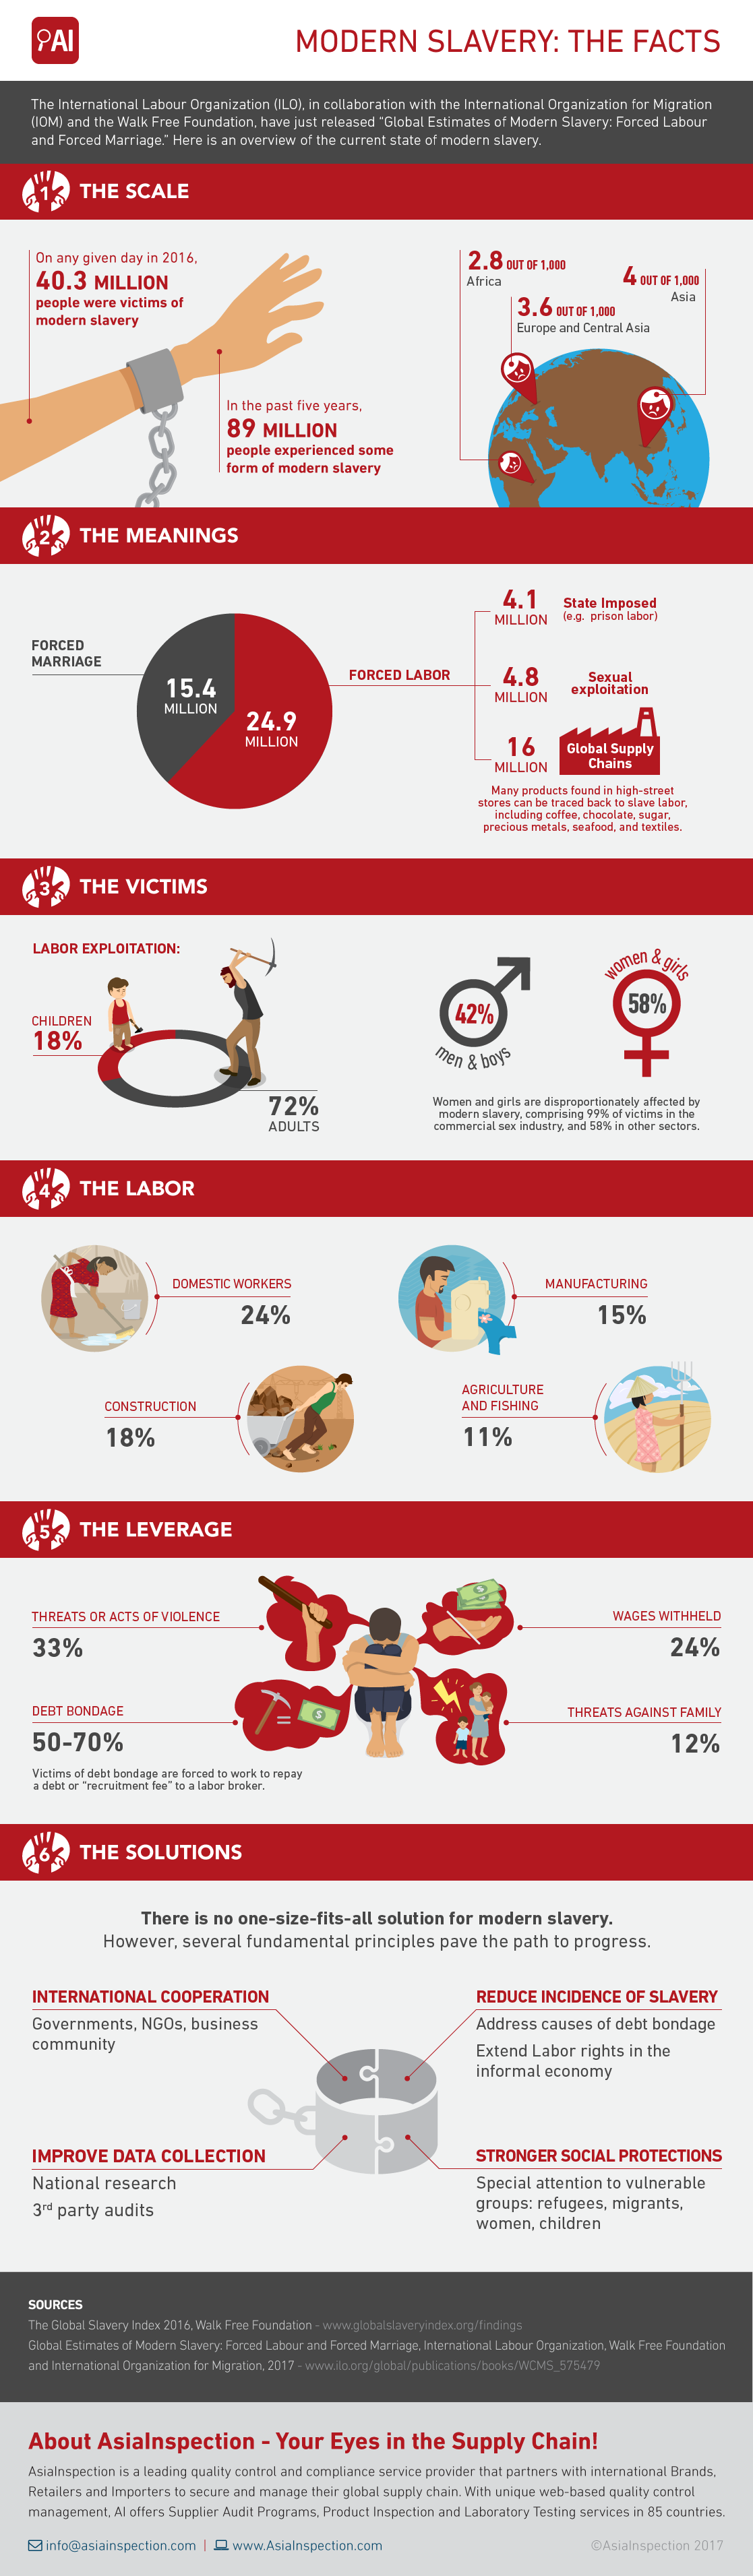 If You Thought Slavery is Dead, Think Again: Facts About Modern Slavery - Infographic